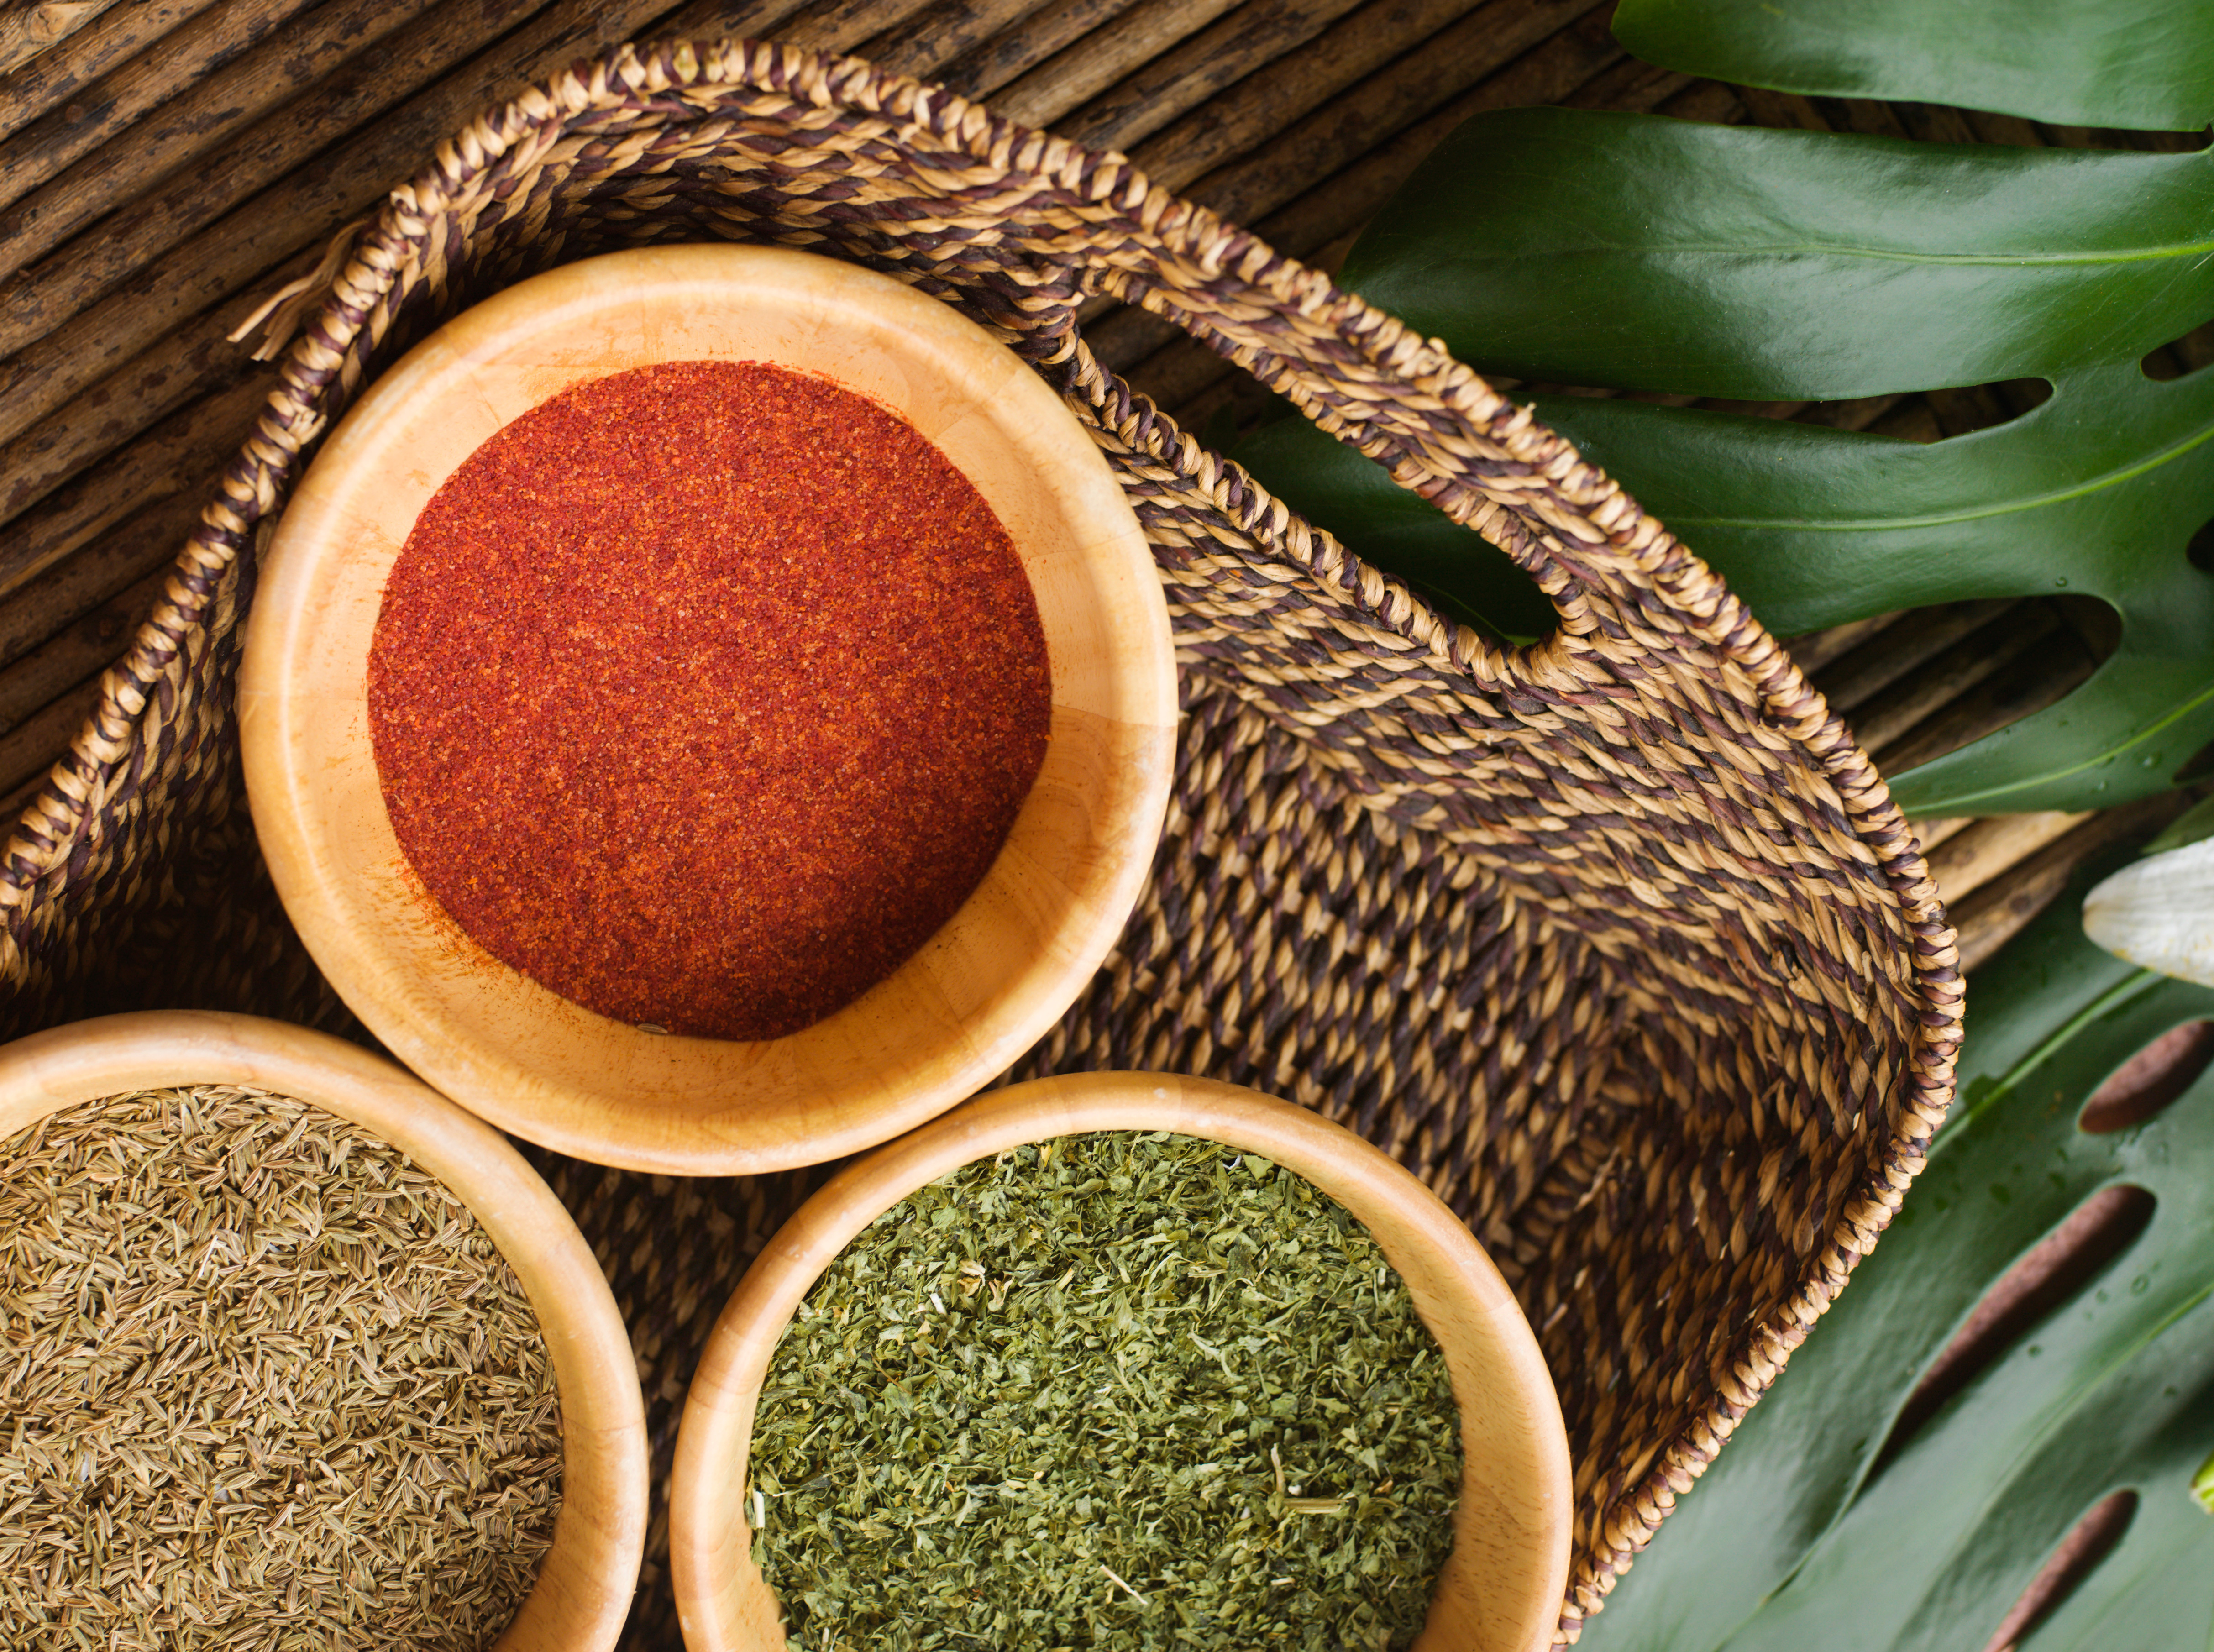 Sprinkle these spices and herbs to build a better brain